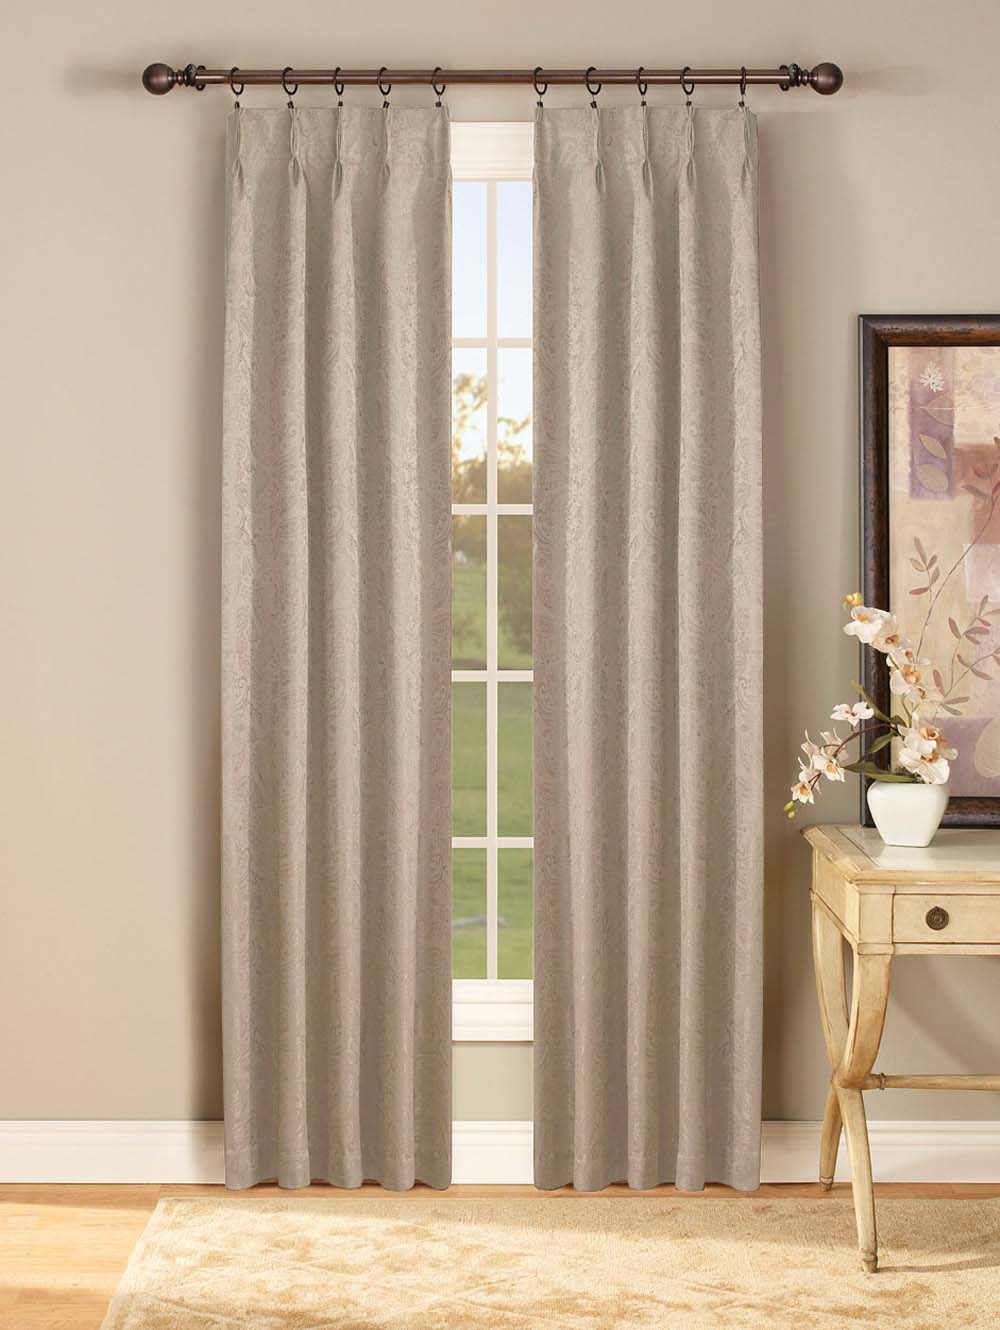 Triple pinch pleated curtains with curtain rod